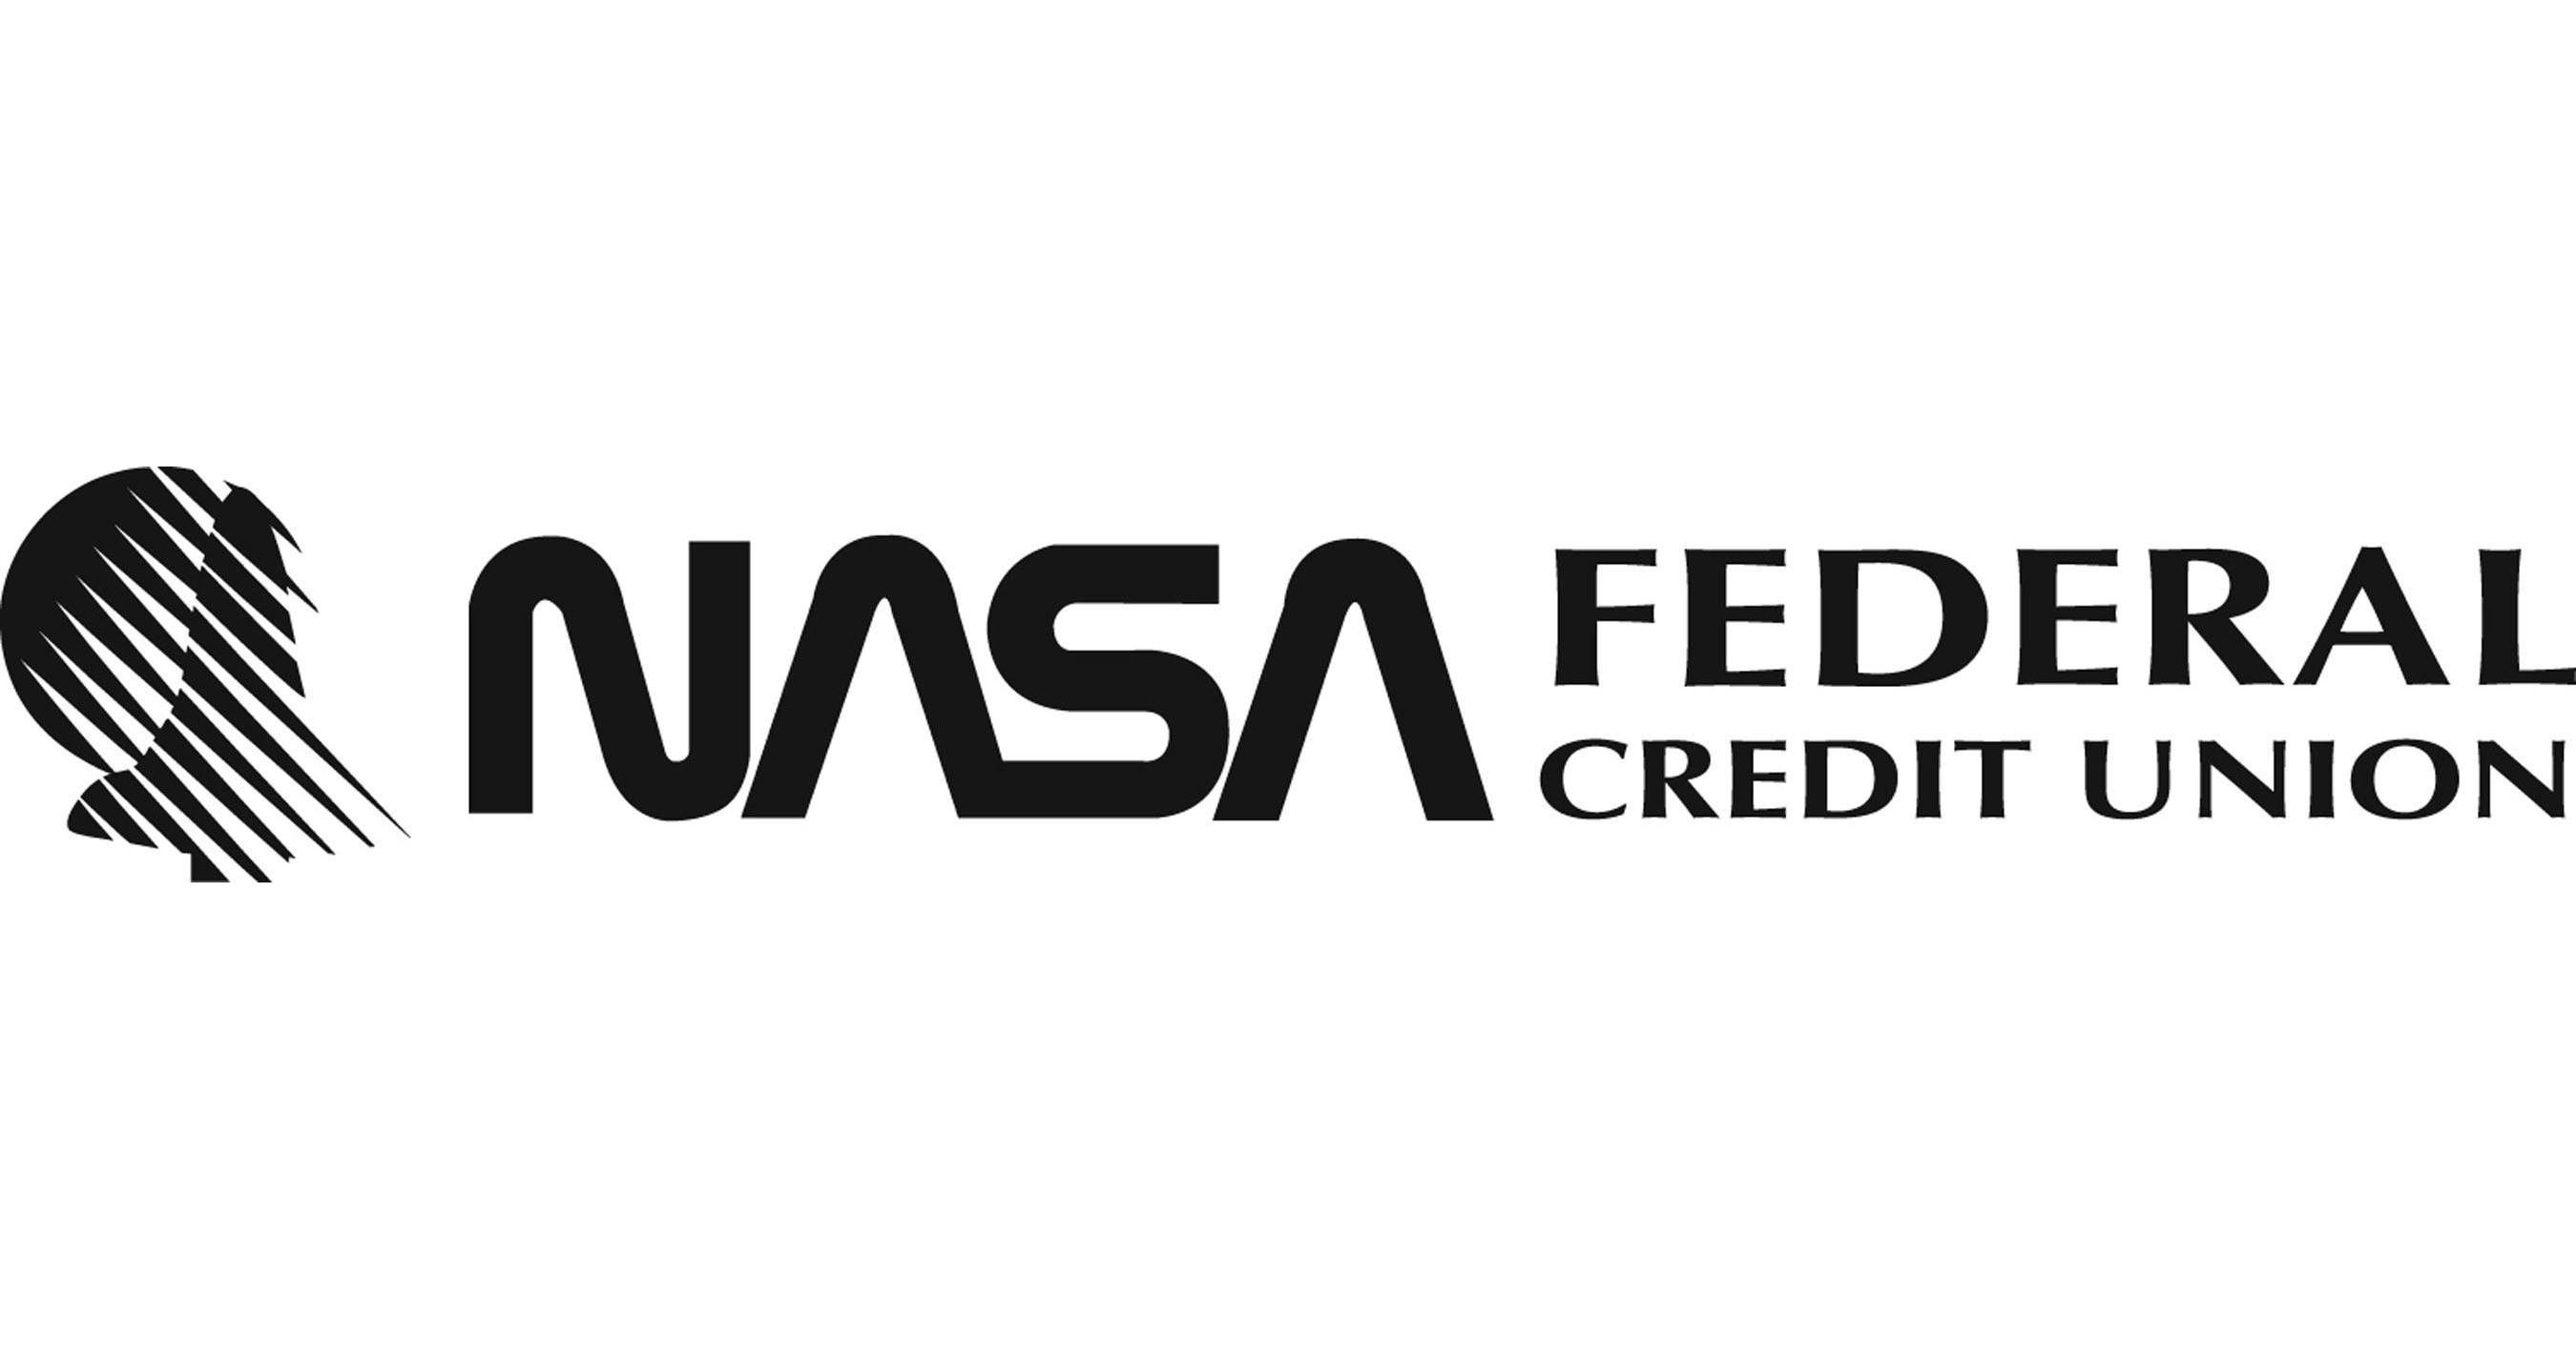 NASA Federal Credit Union and The Partnership Federal